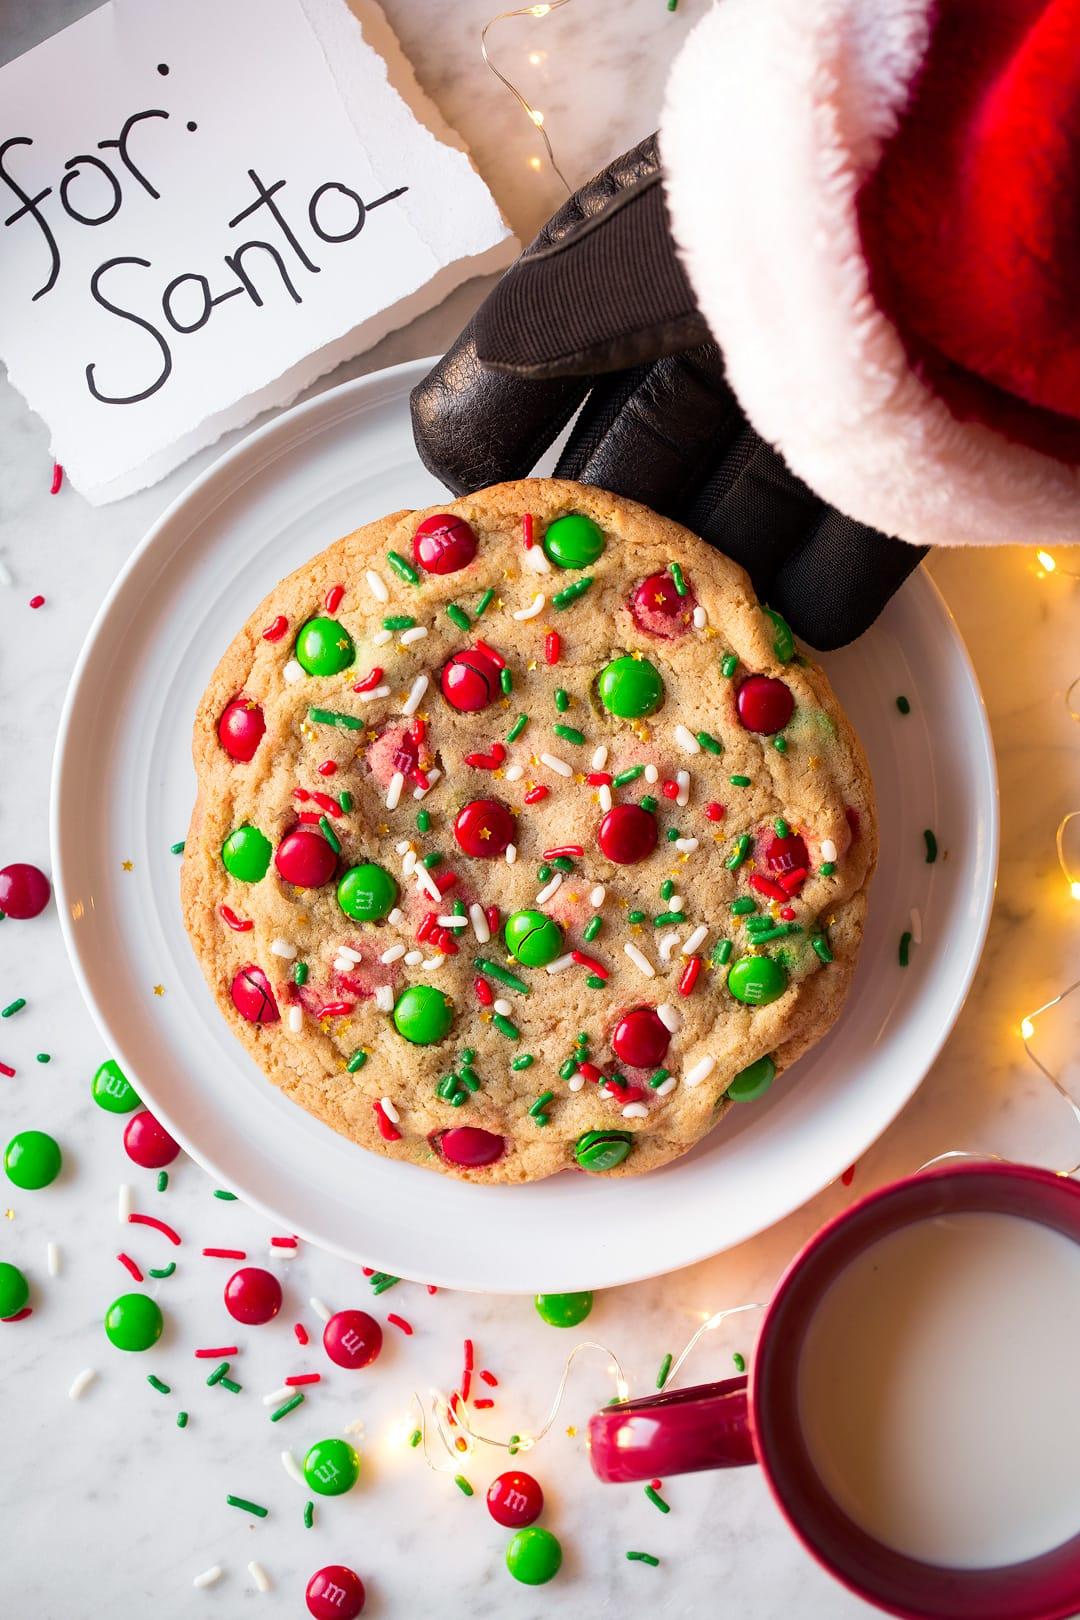 One Santa Cookie (Quick and Easy to Make)